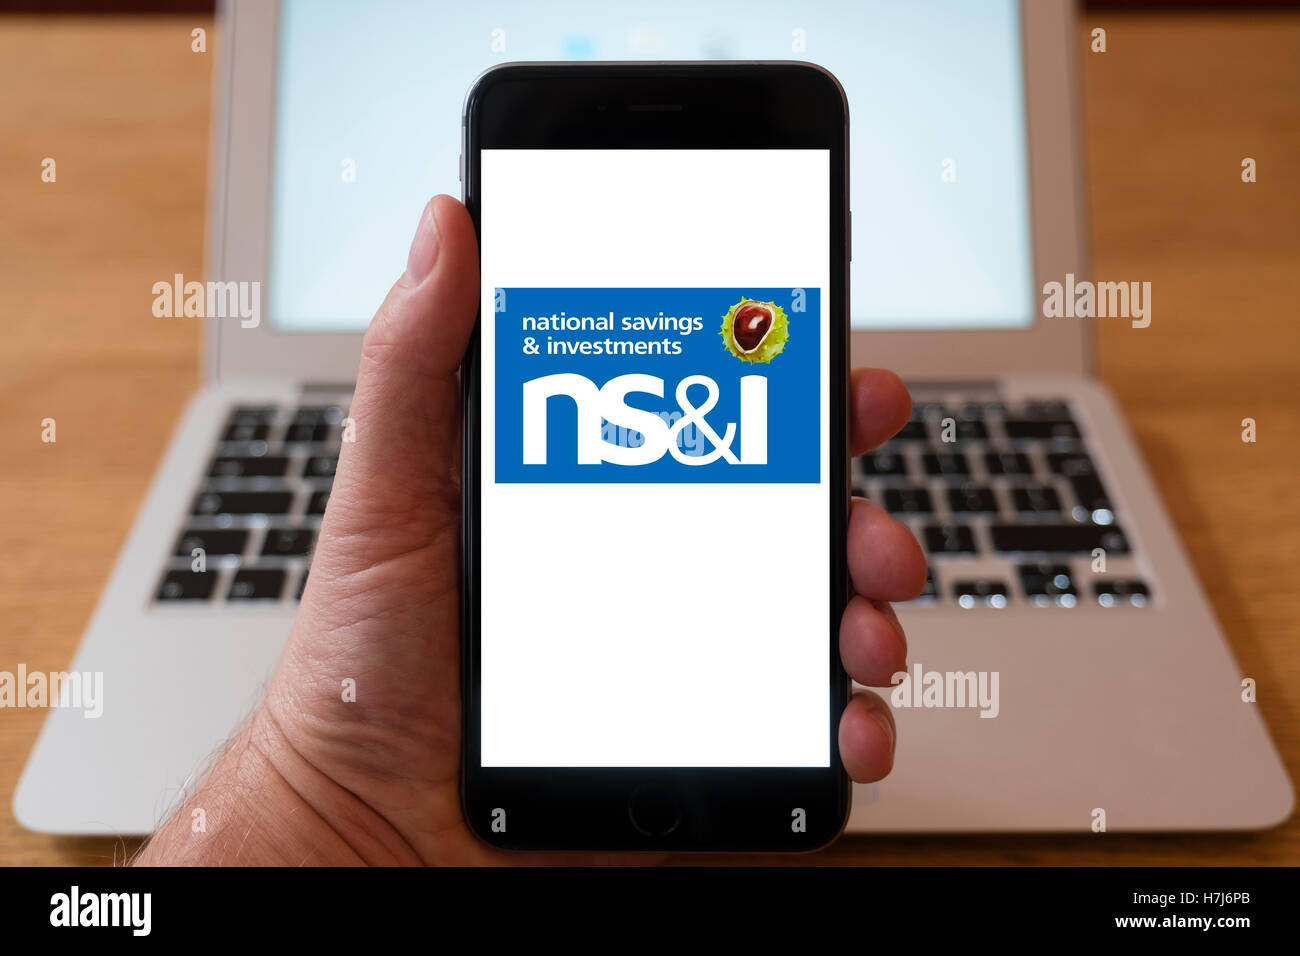 Using iPhone smart phone to display logo of NS&I  , National Savings and Investments . - Stock Image